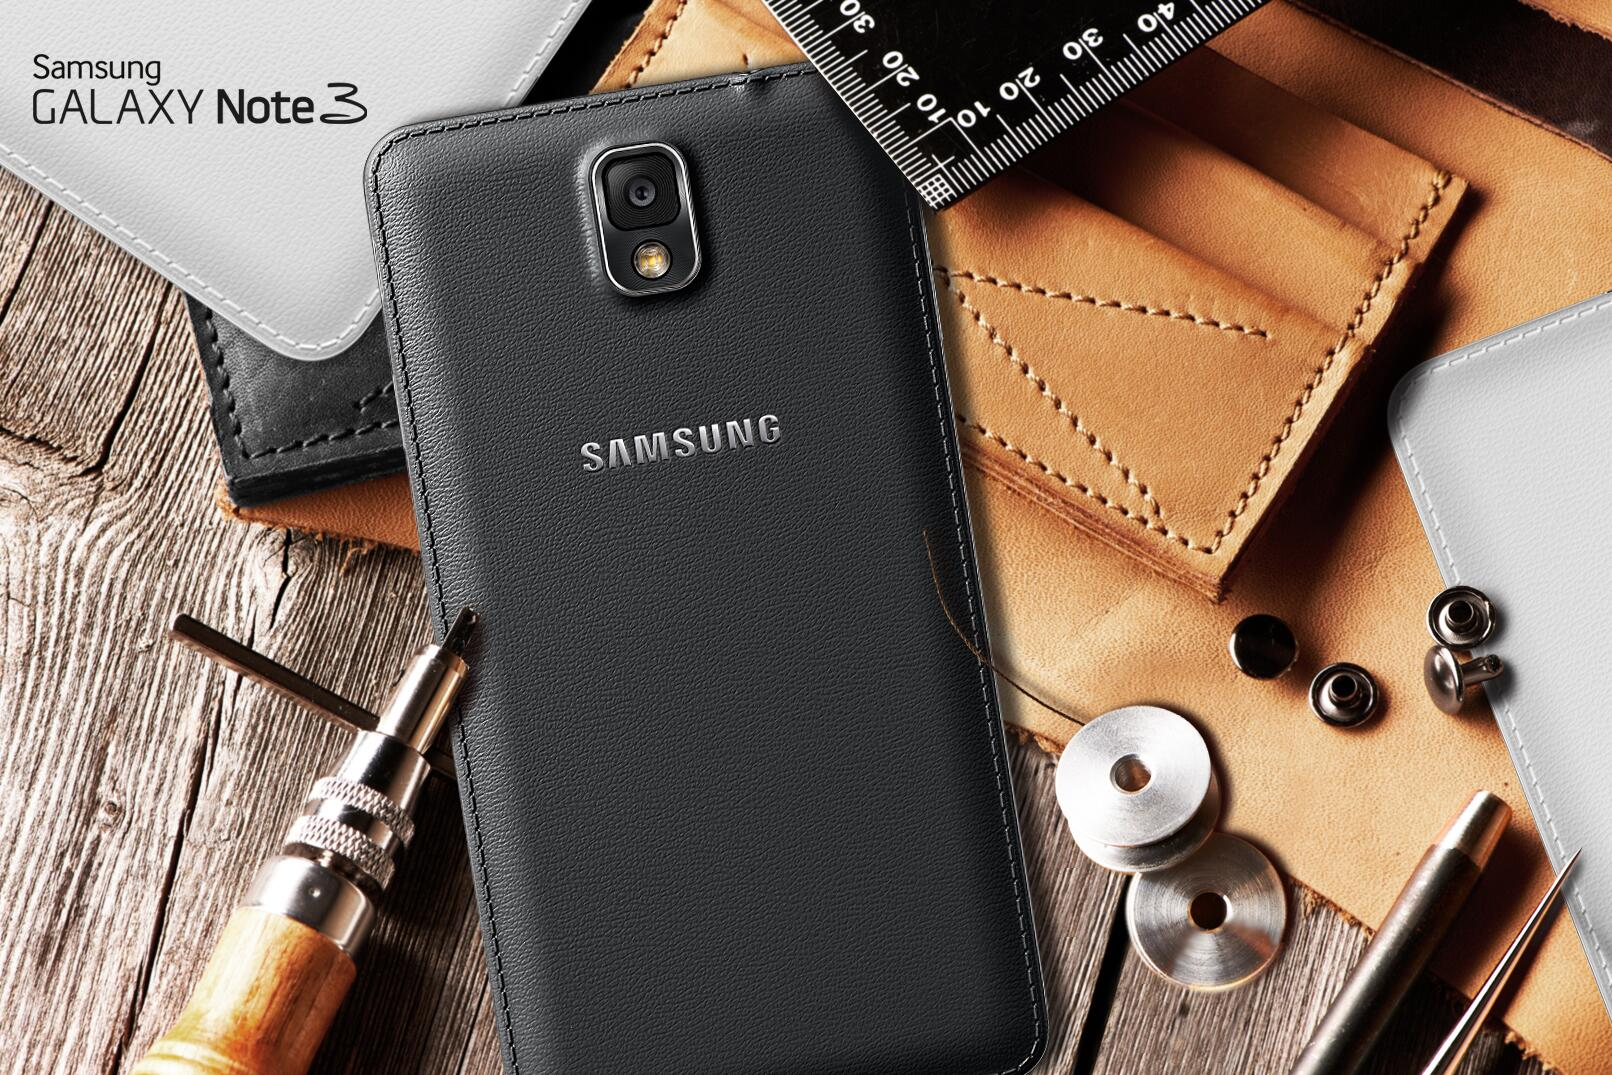 Soft, textured-touch back cover with delicate stitching. Meet the #GALAXYNote3. http://t.co/IZUkbx4mHr